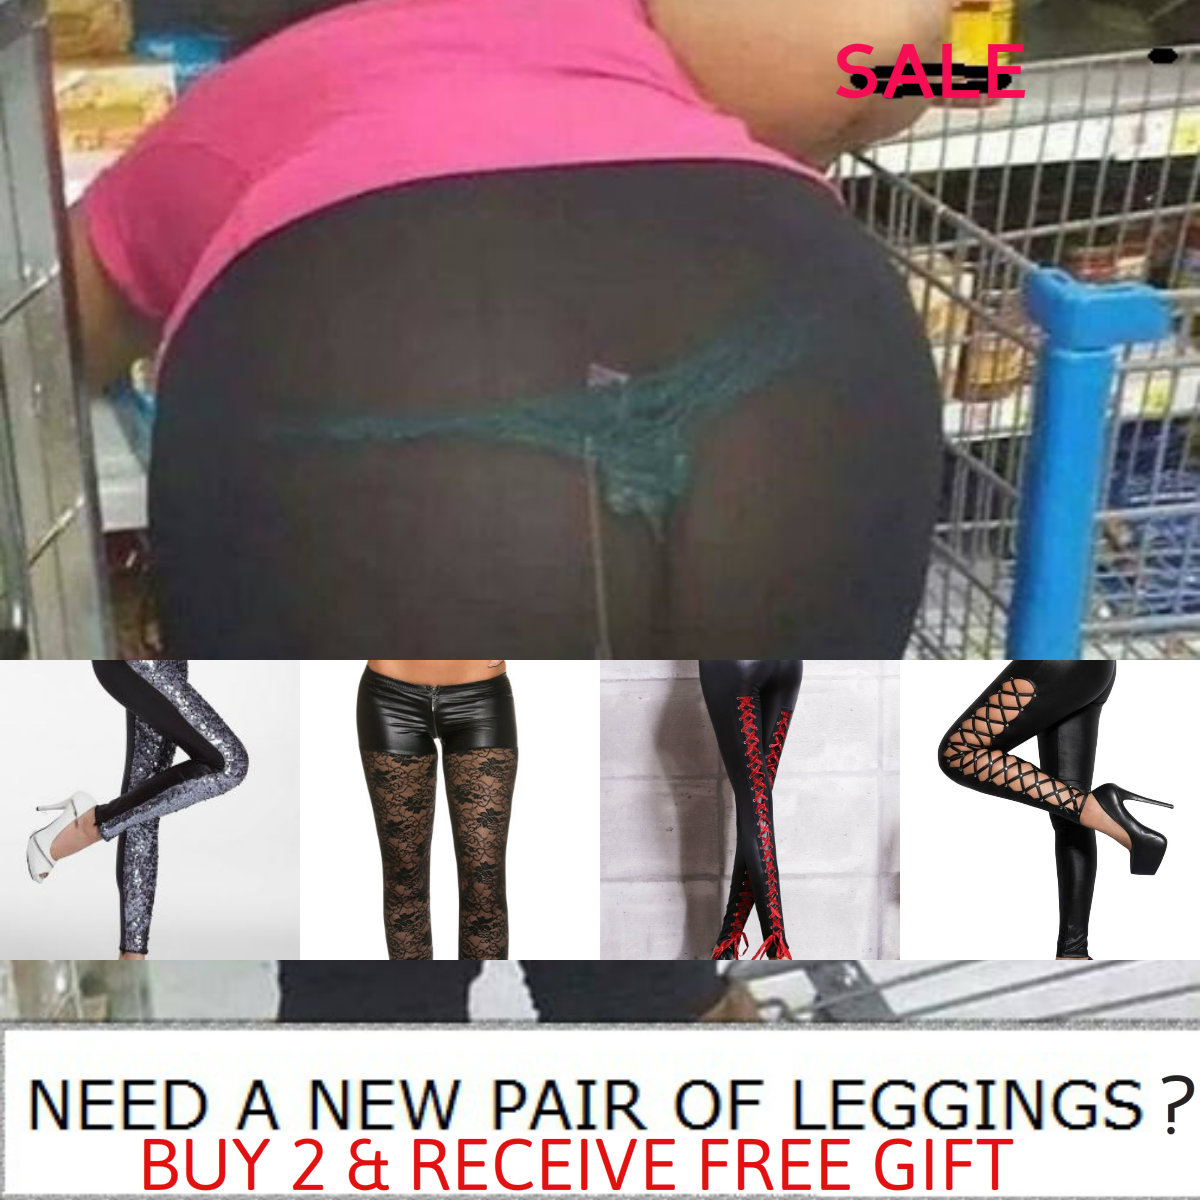 Women's Leggings, Womens Legwear, Womens Tights, Women's Legwear Promotion